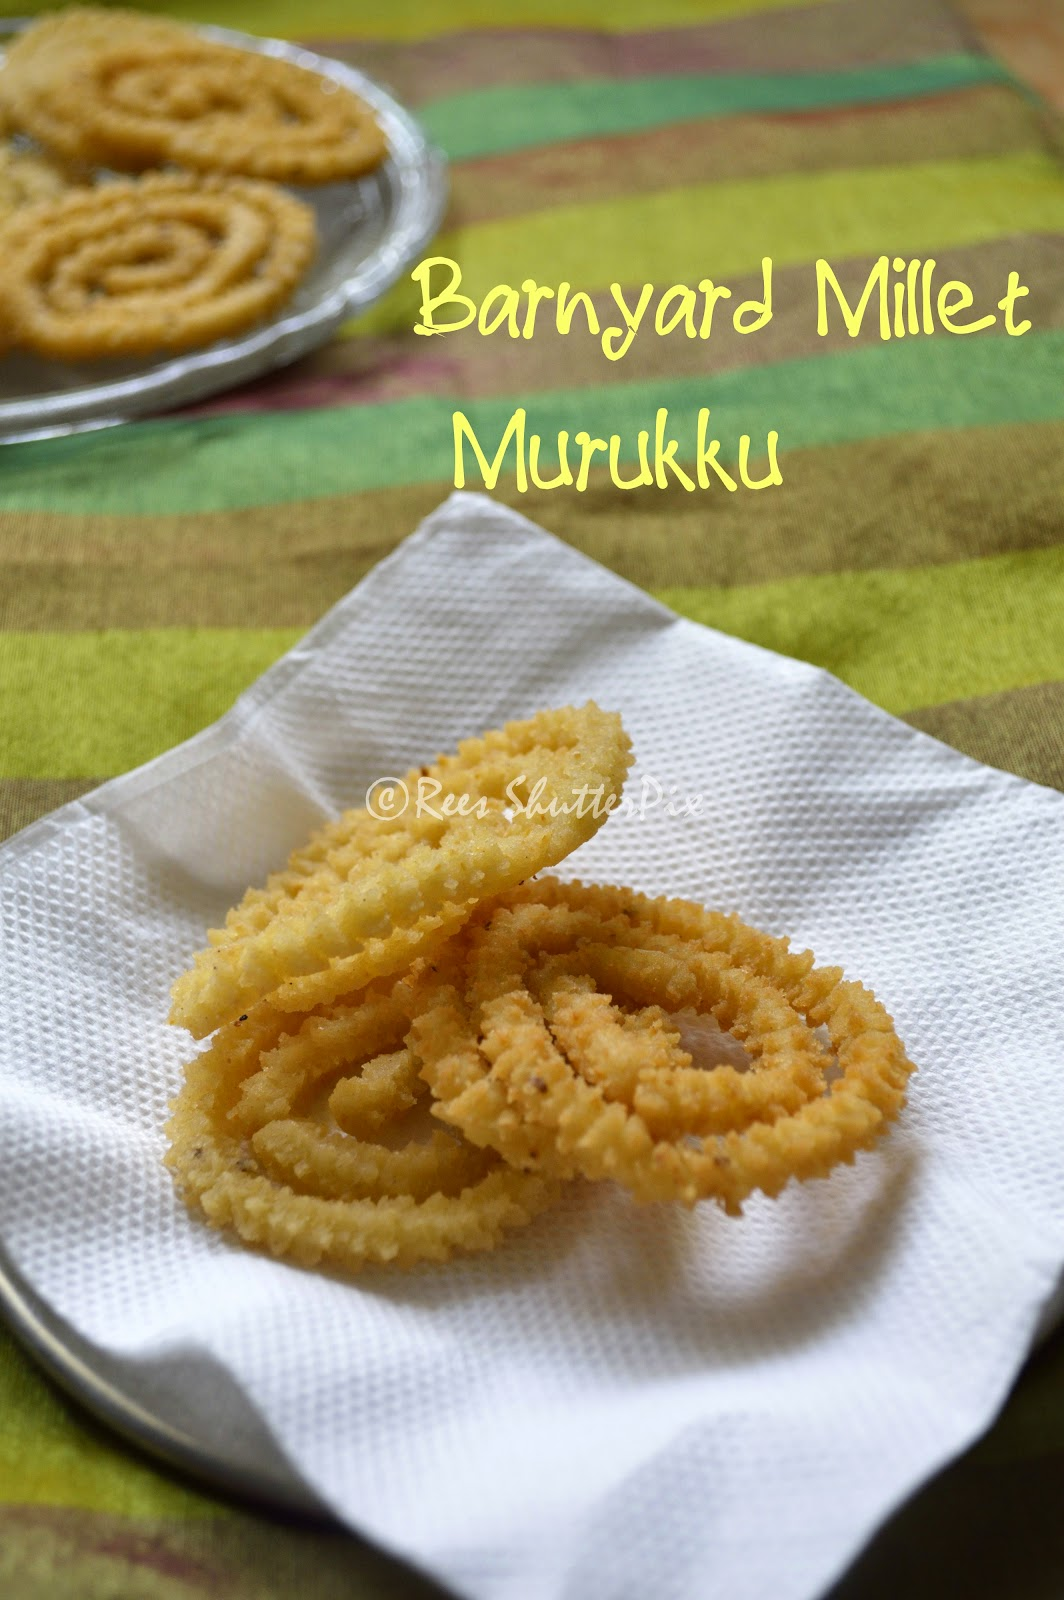 Kuthiraivali Murukku | Barnyard Murukku | Millet Recipes, easy millet recipe, Barnyard Millet Recipes, Snacks, Savoury Snacks, Festive Snacks, Murukku Recipes, easy millet snack